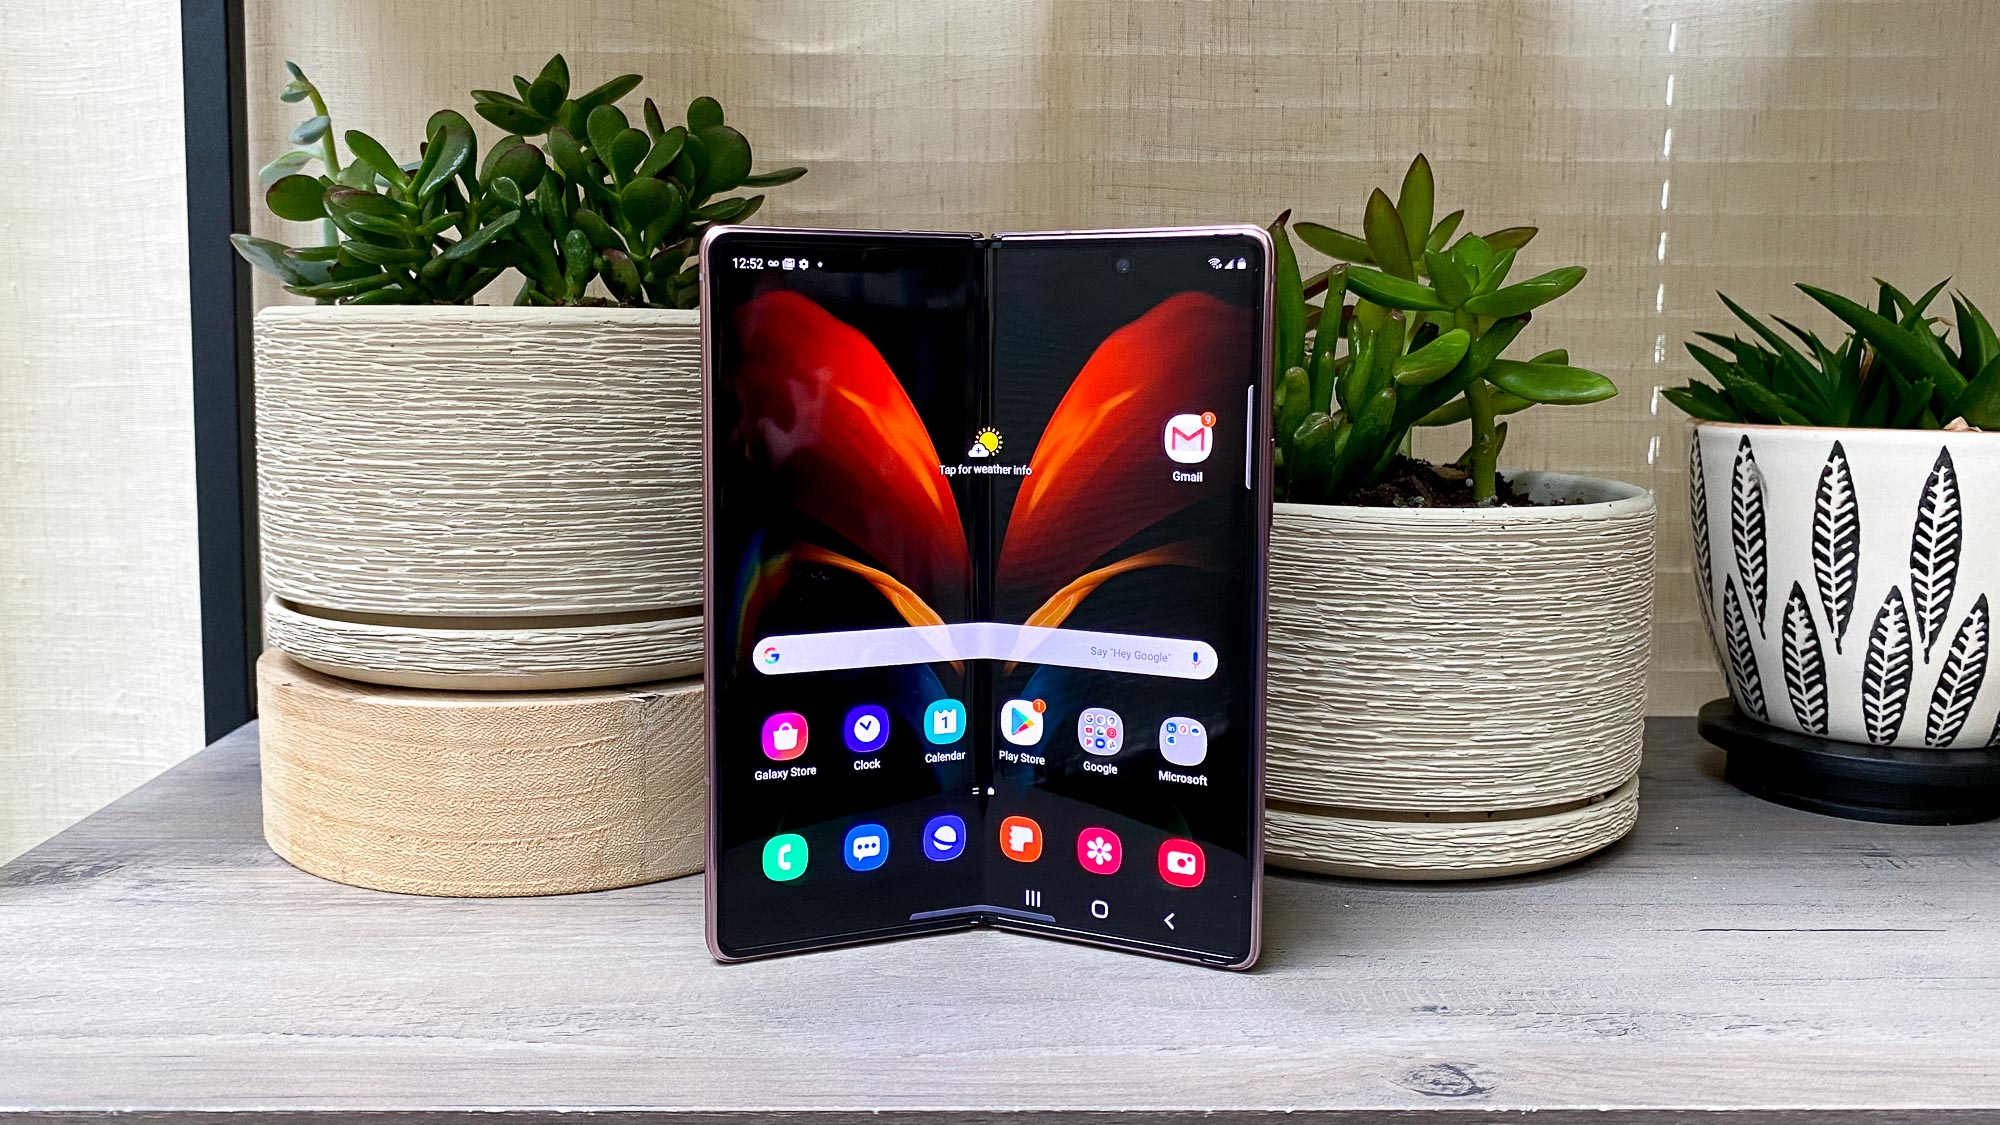 best android phones: Samsung Galaxy Z Fold 2